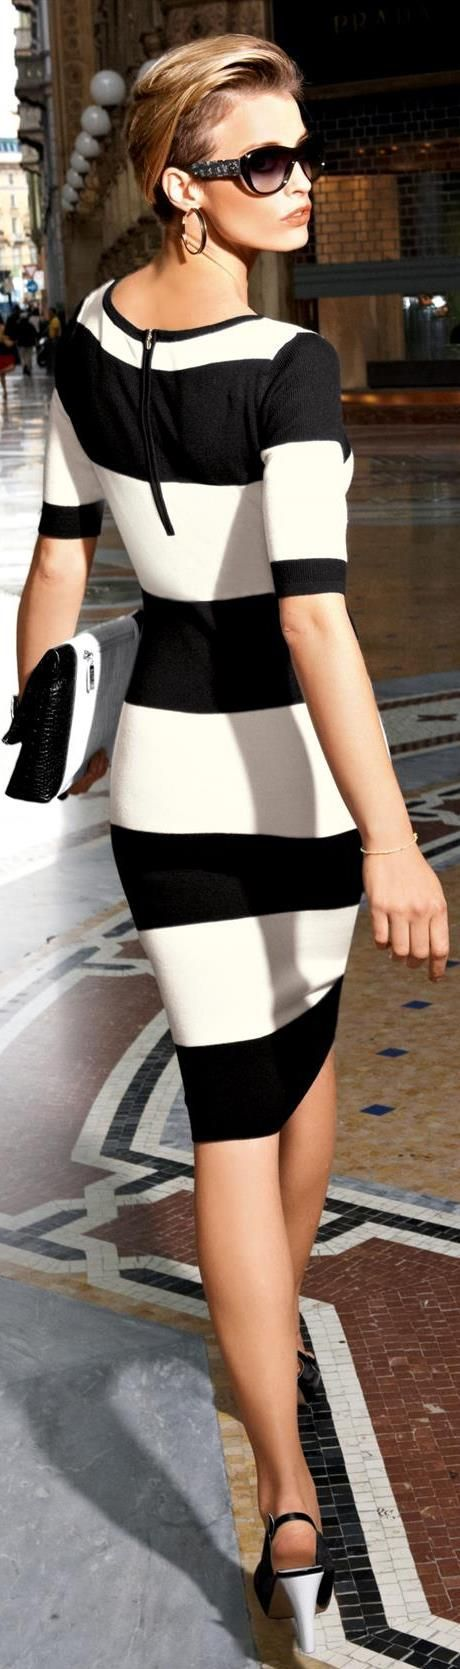 #street #style stripes black and white @wachabuy